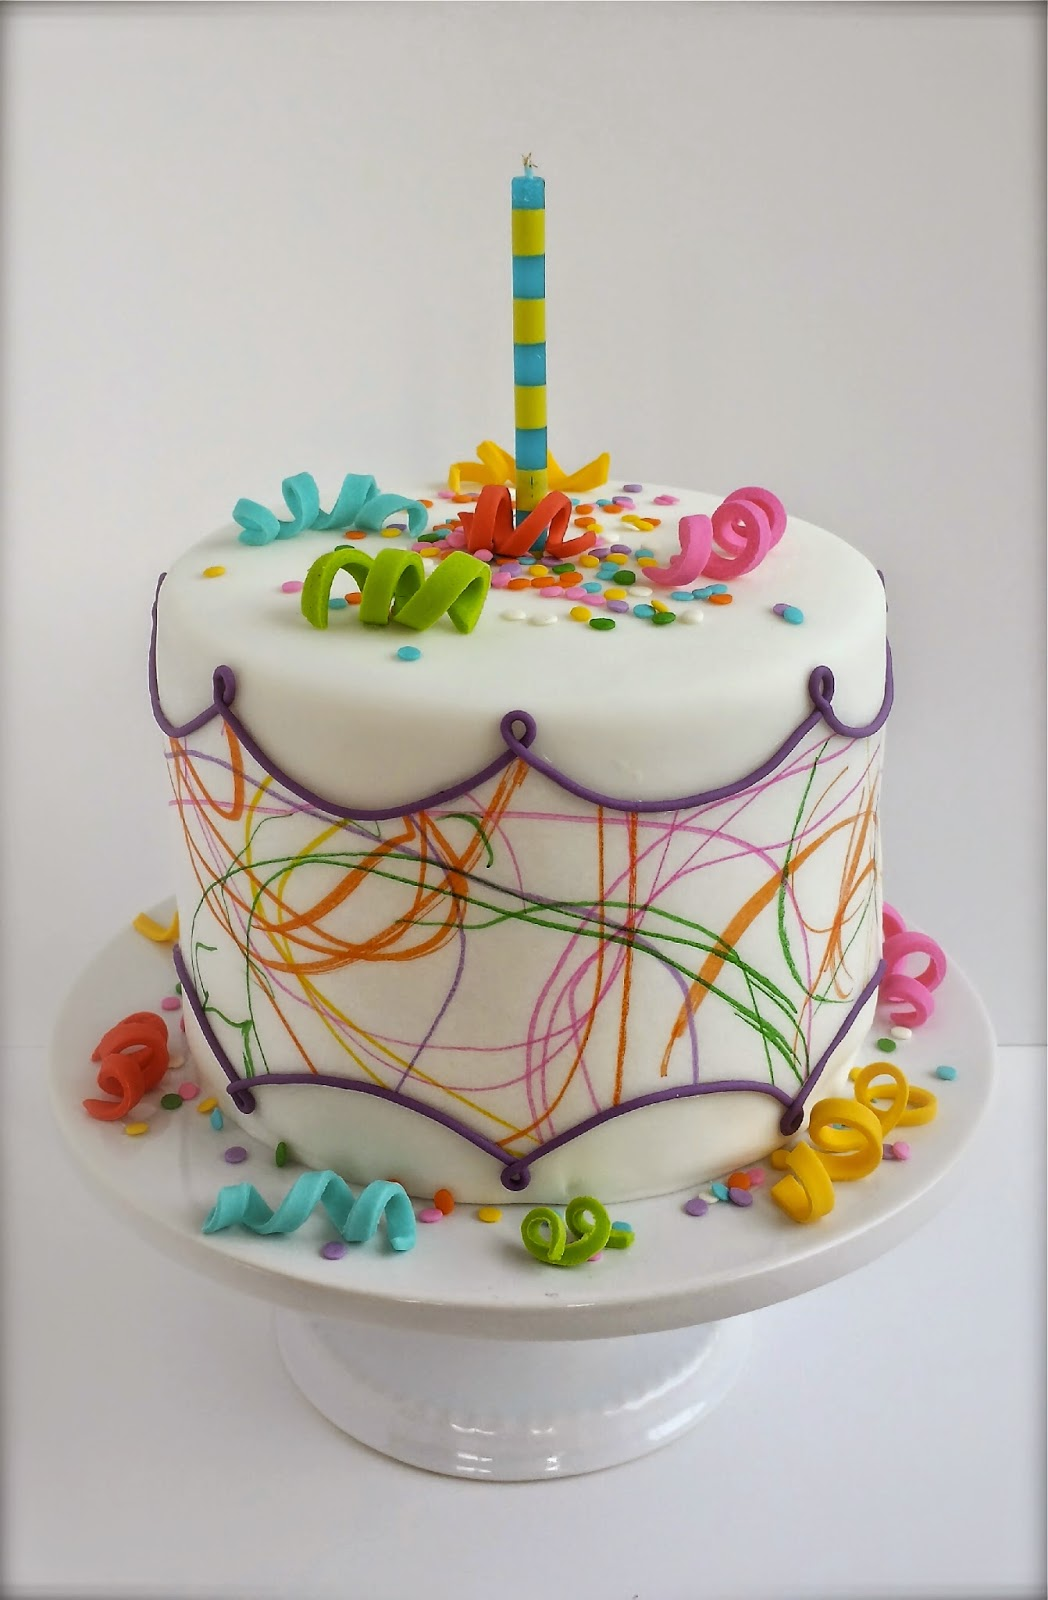 Art Gallery Birthday Cake : Cake Blog: Toddler Art Birthday Cake